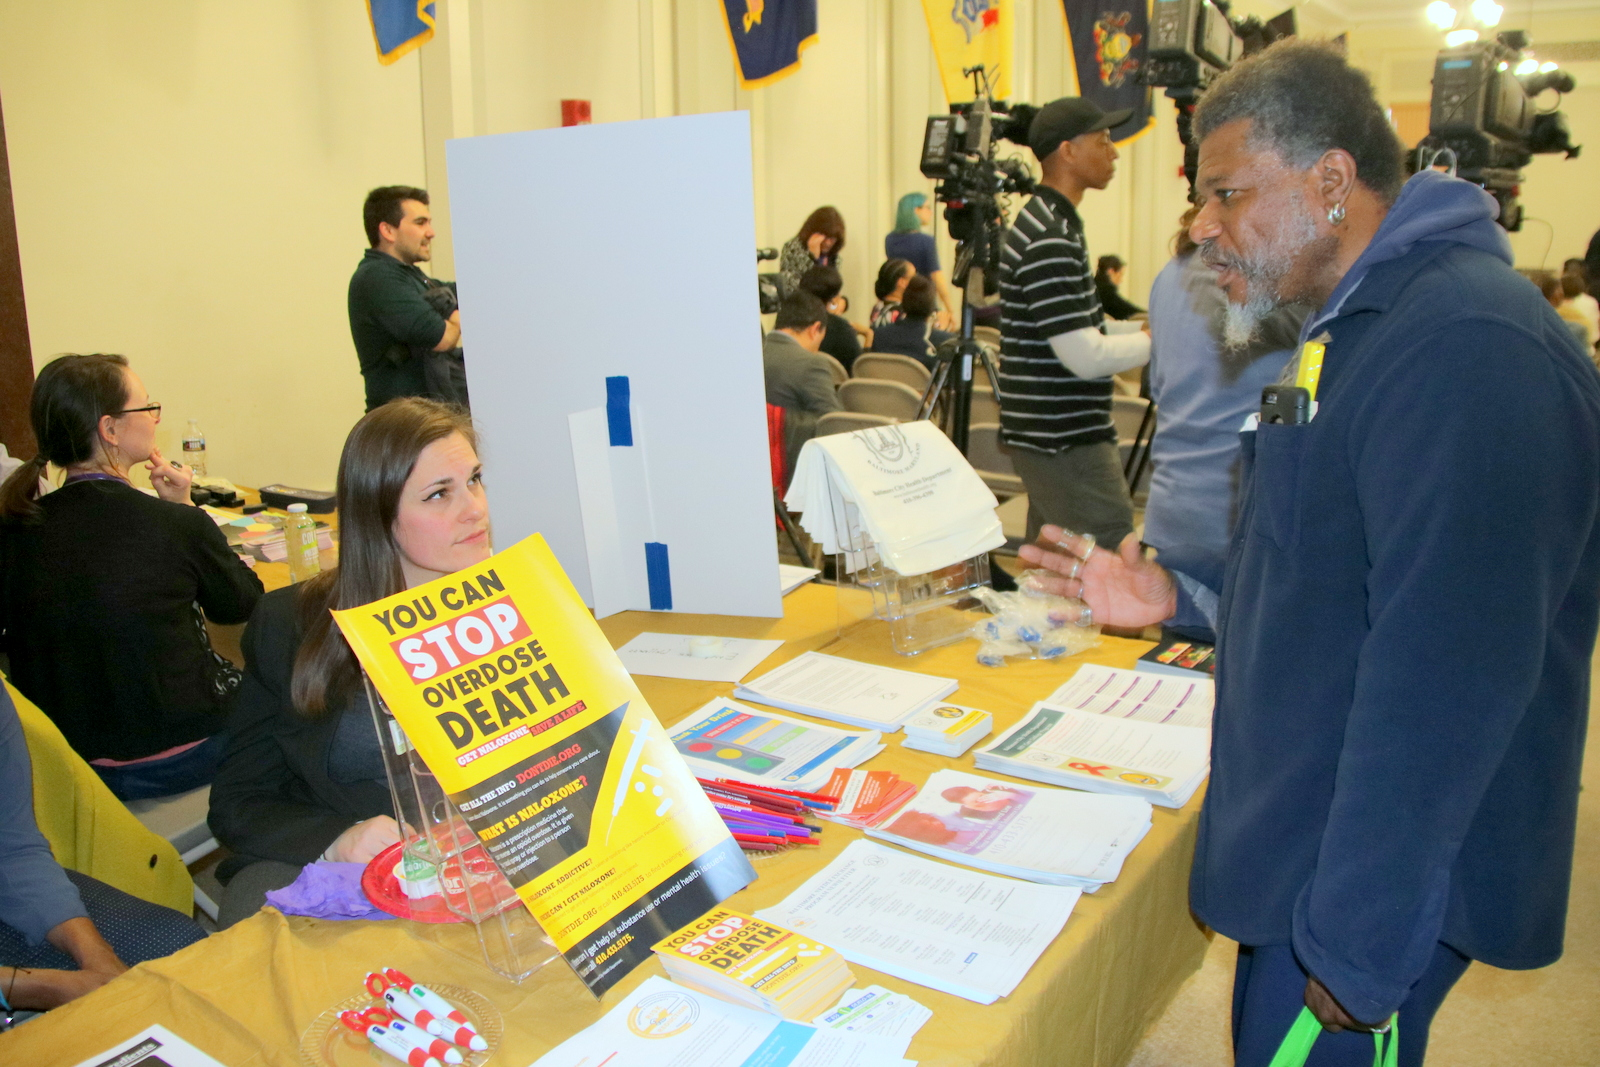 Anthony Williams, of Housing Our Neighbors, at Taxpayers' Night. (Fern Shen)